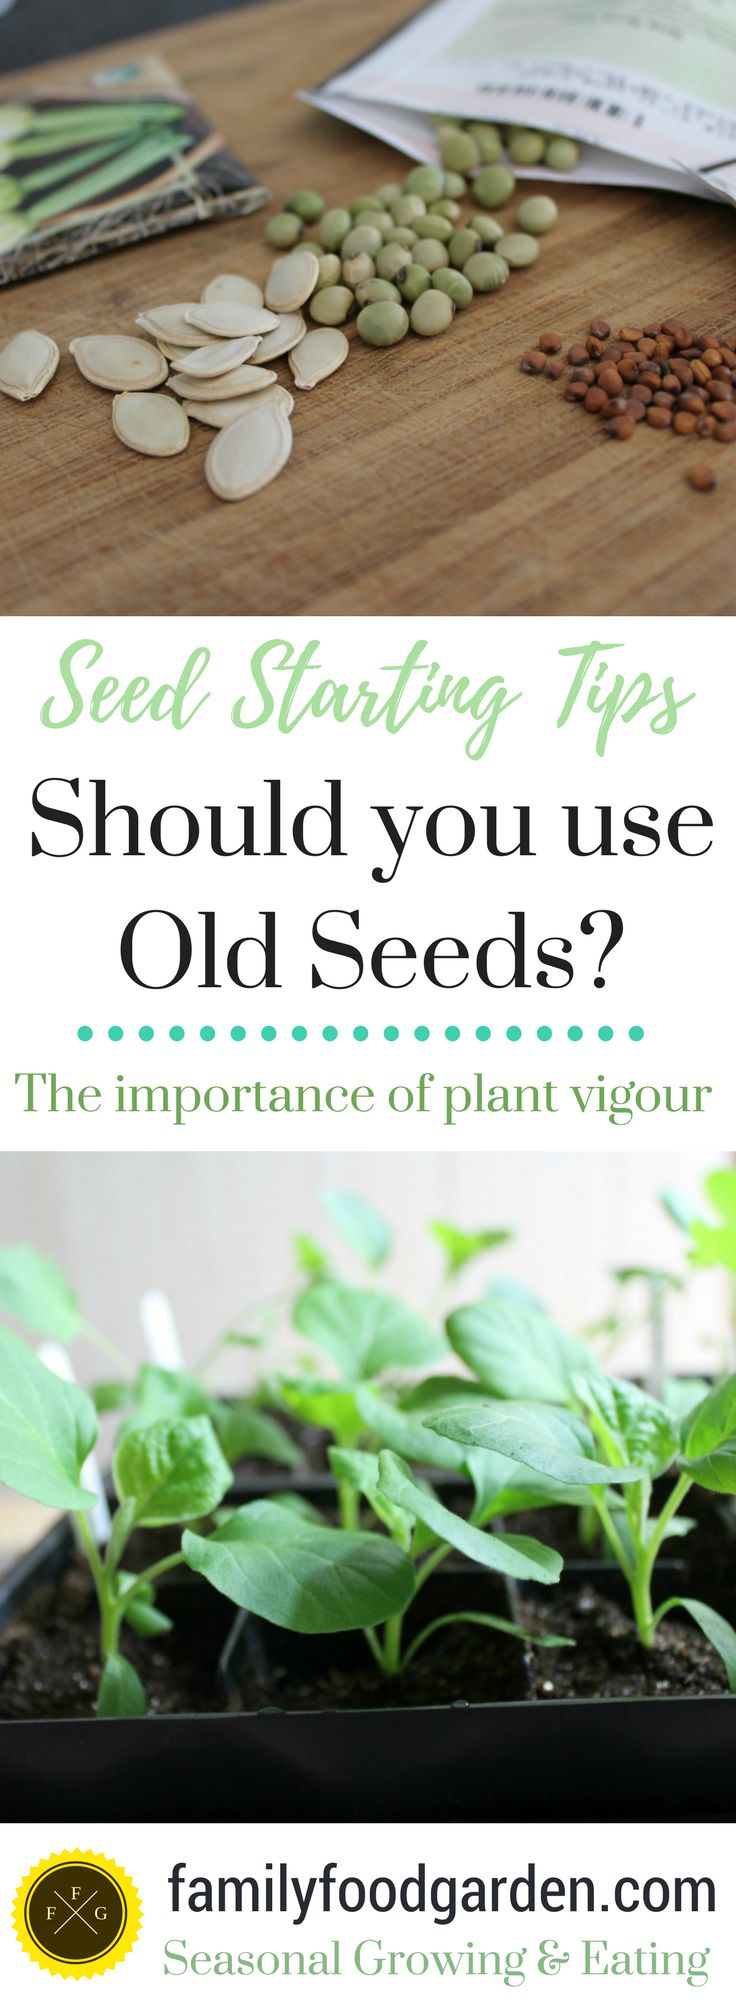 This time of the year I see lots of seed starting tricks. One seed starting tipis pre-germinating your seeds before planting them into pots. Another is pre-germinating your old seeds so you're not wasting them. Now I'm a big fan of not wasting anything, however I'm also a gardener that focuses o